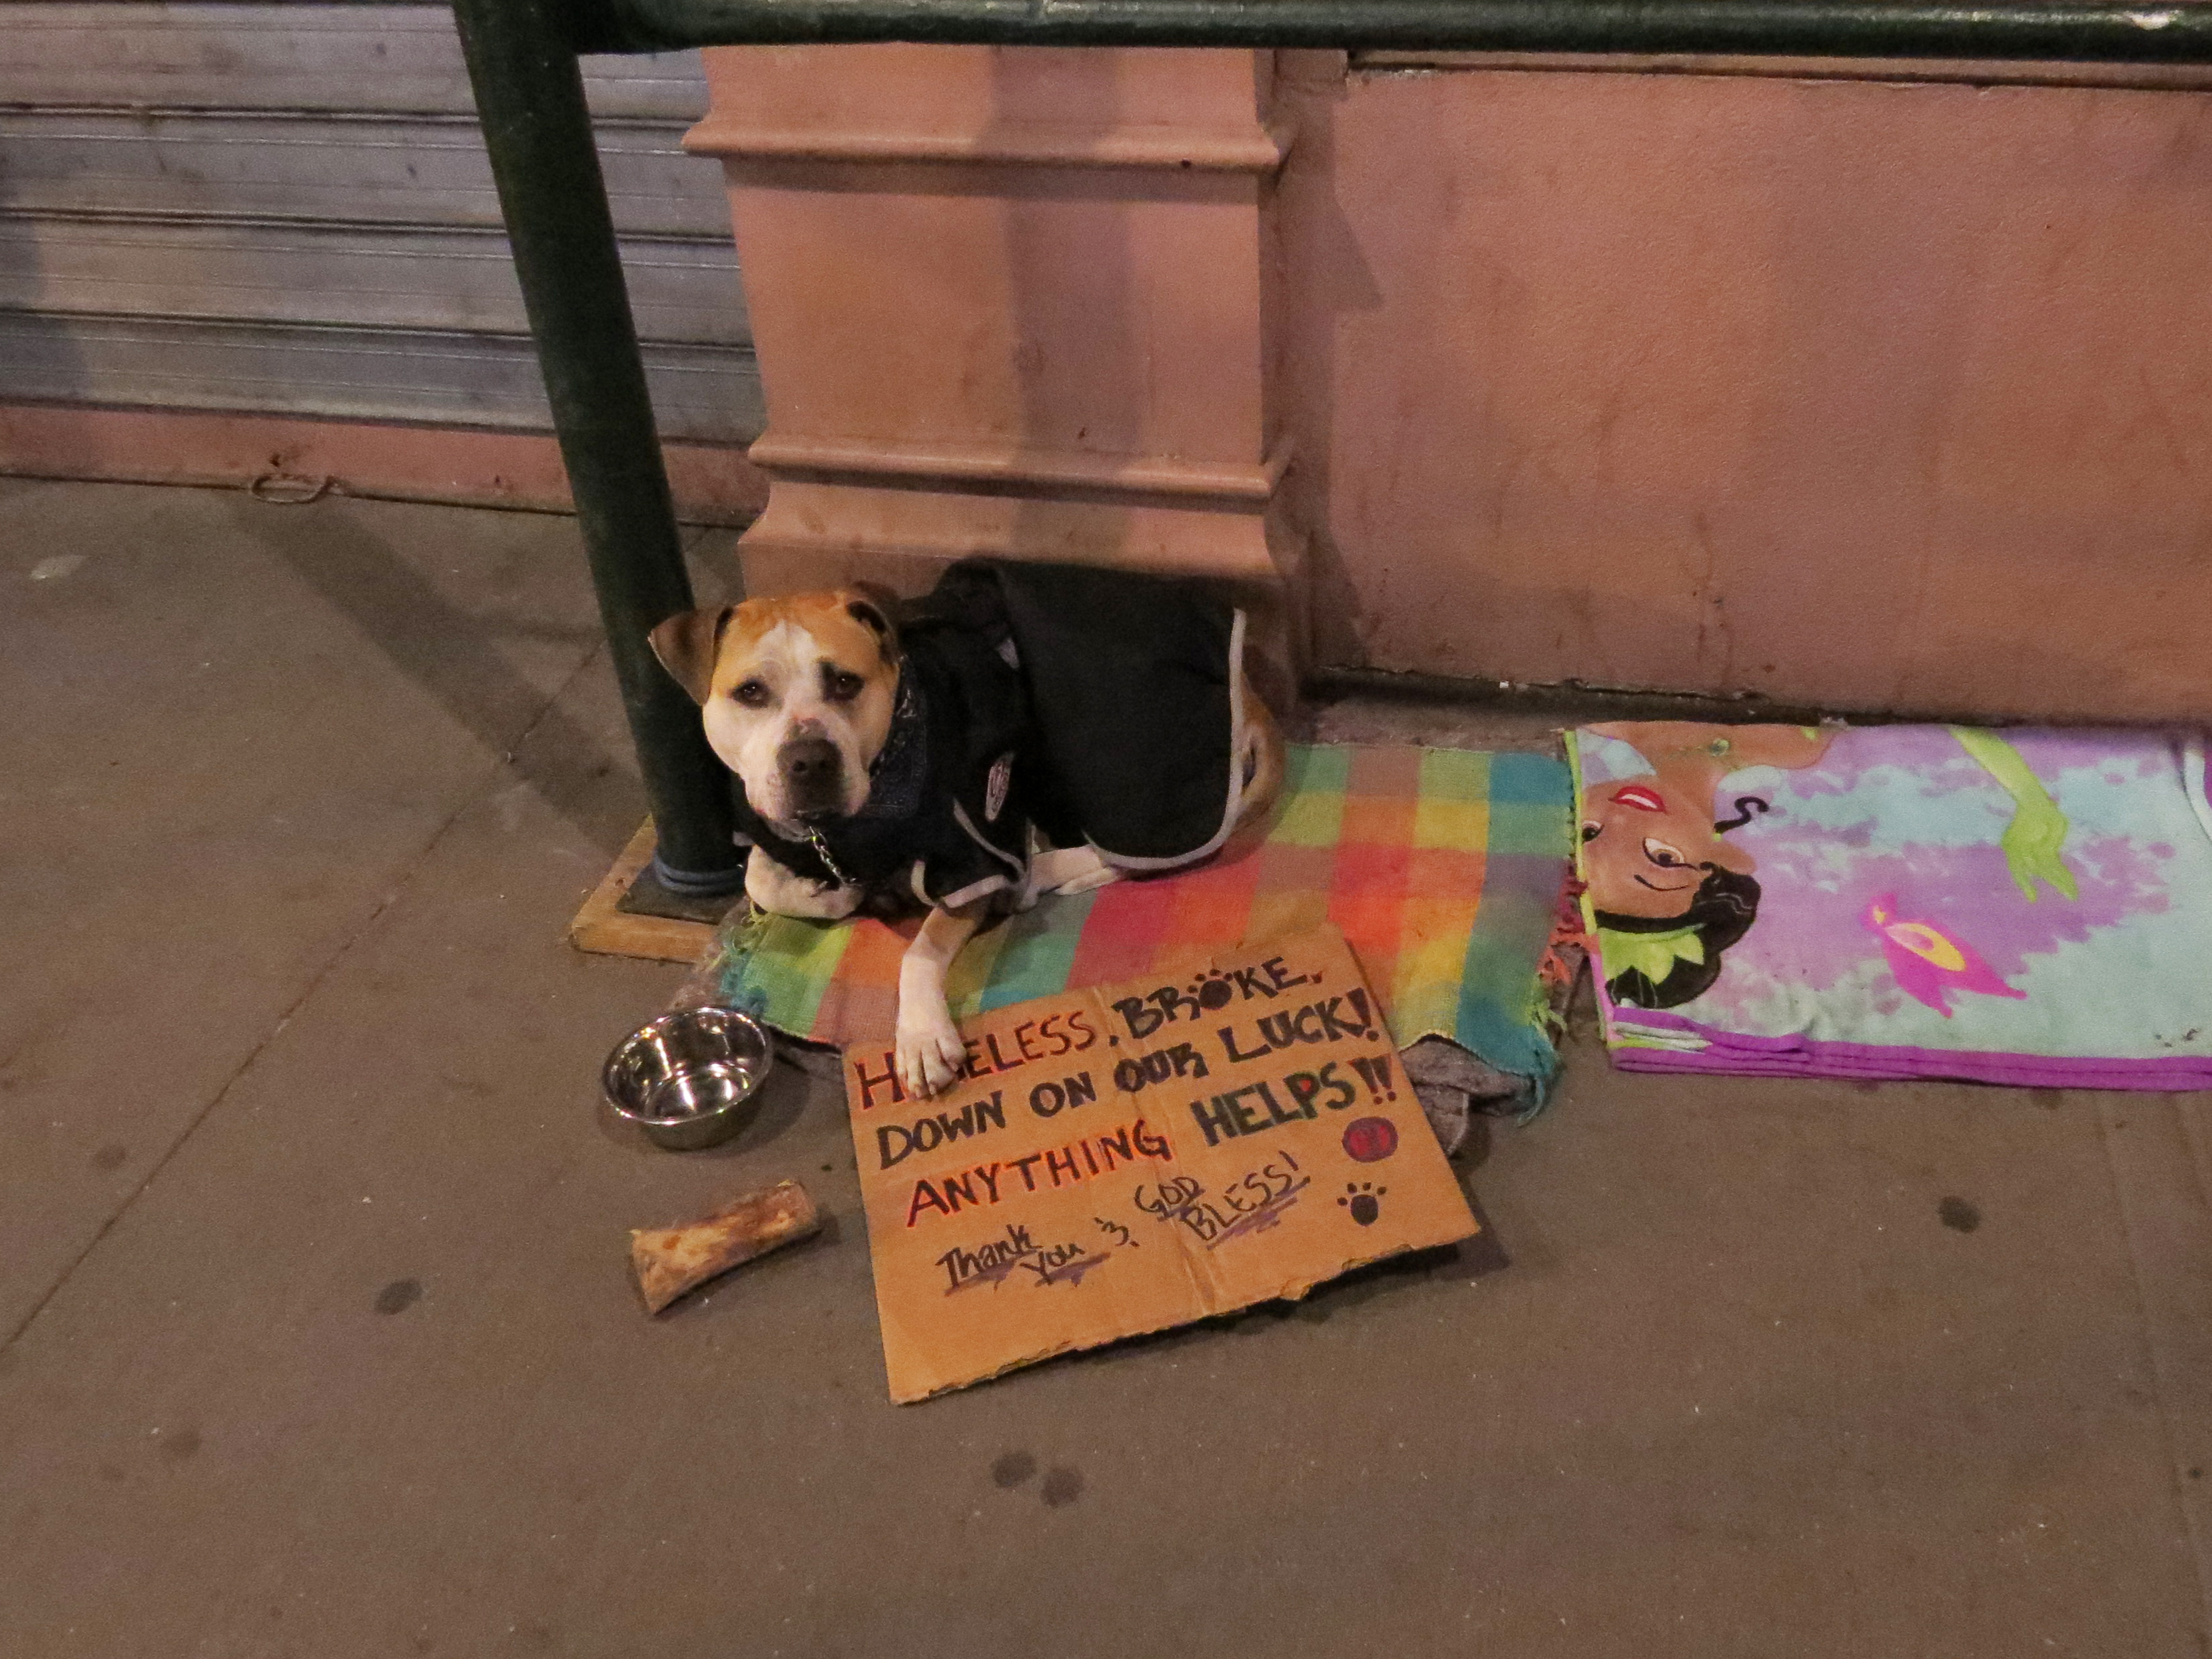 dog with cardboard sign asking for help